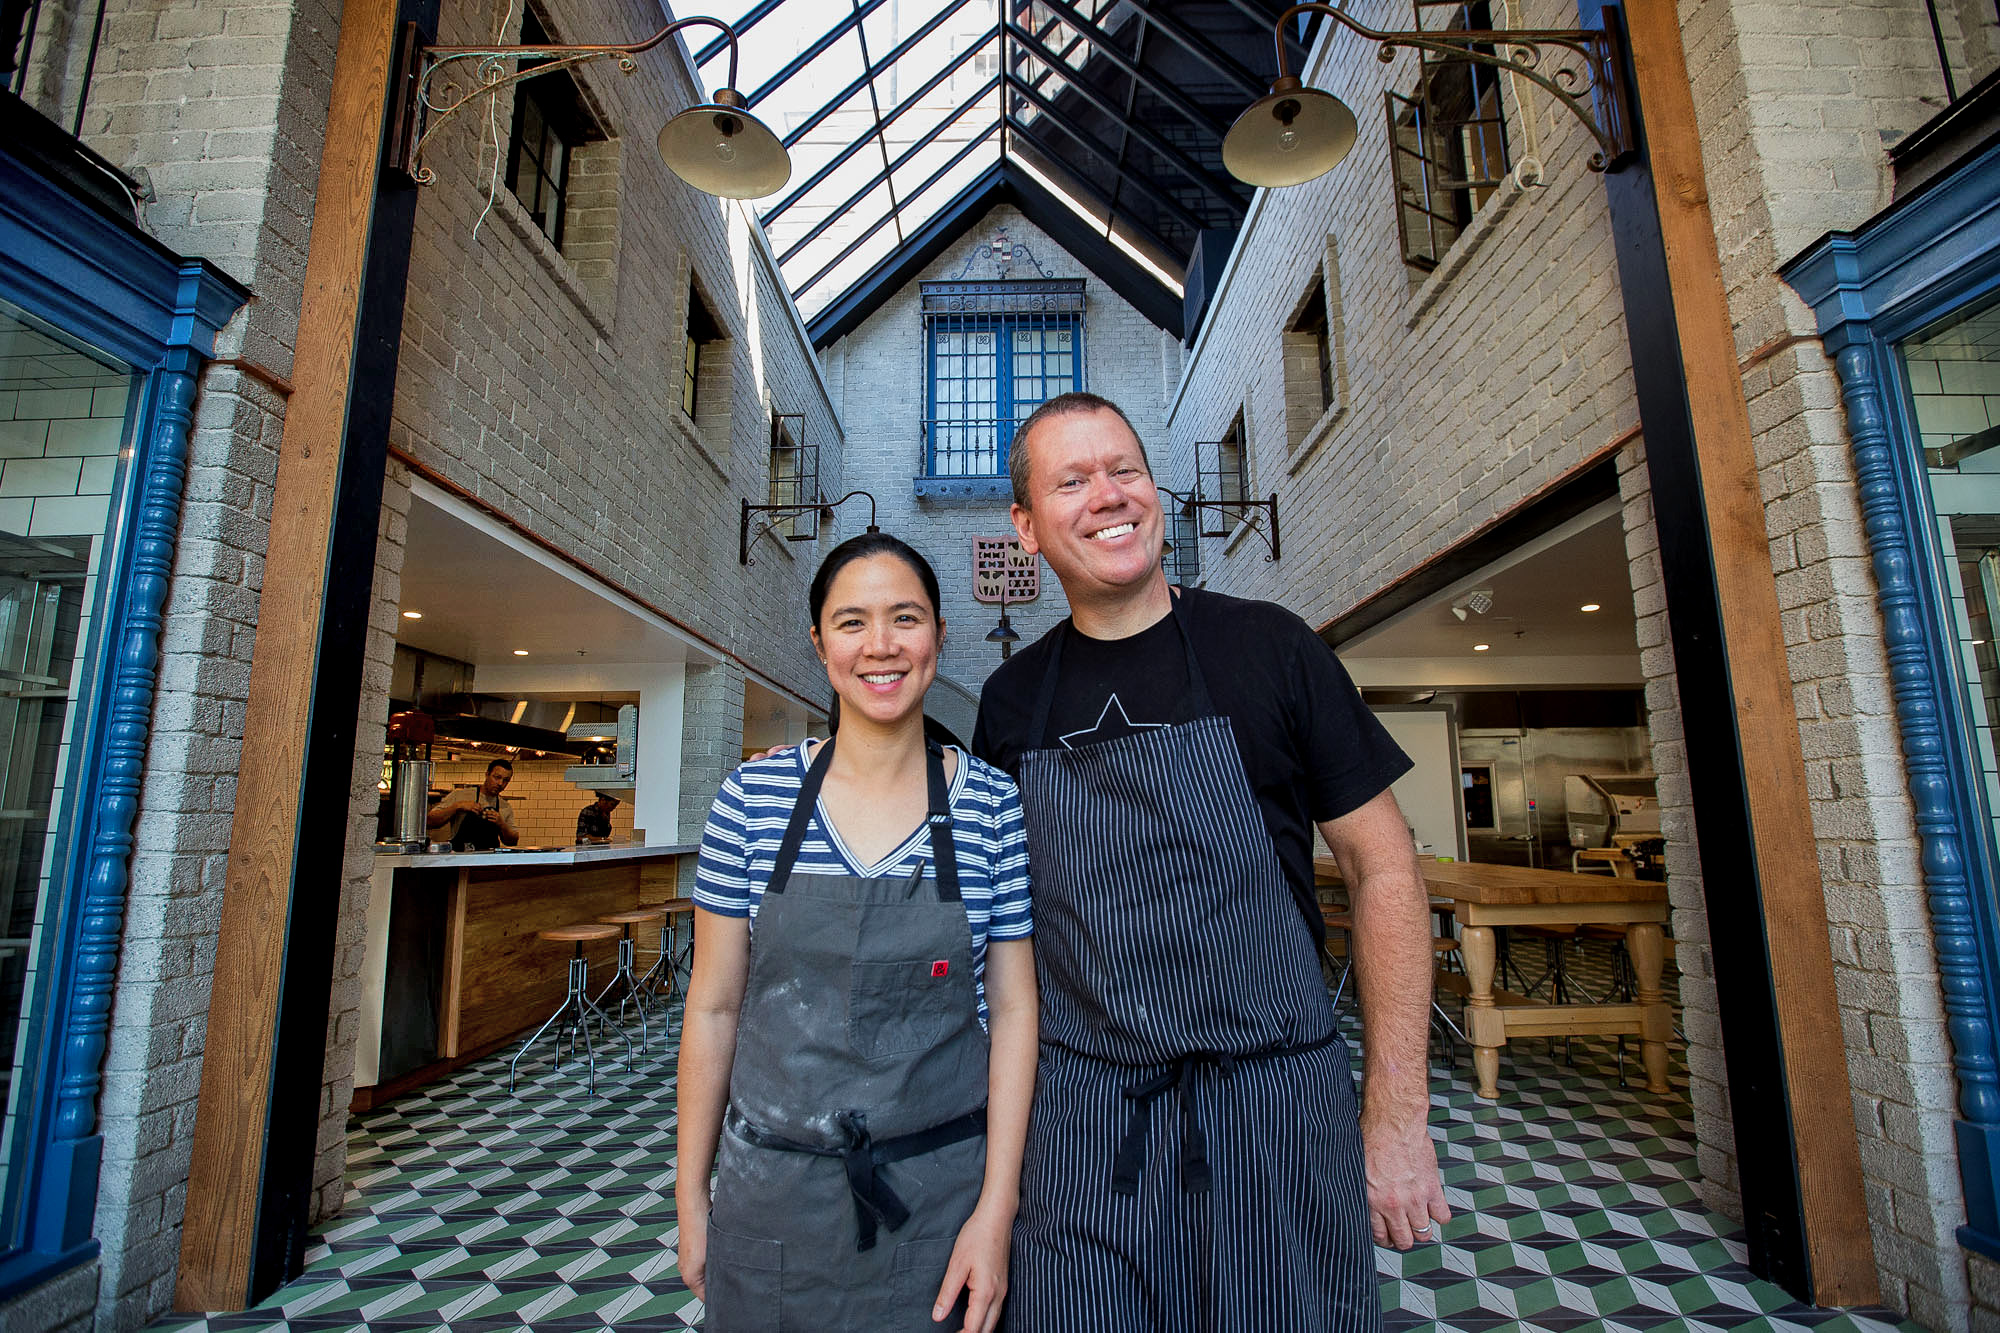 Republique's Walter and Margarita Manzke pose in denim aprons in front of their soaring atrium dining room.